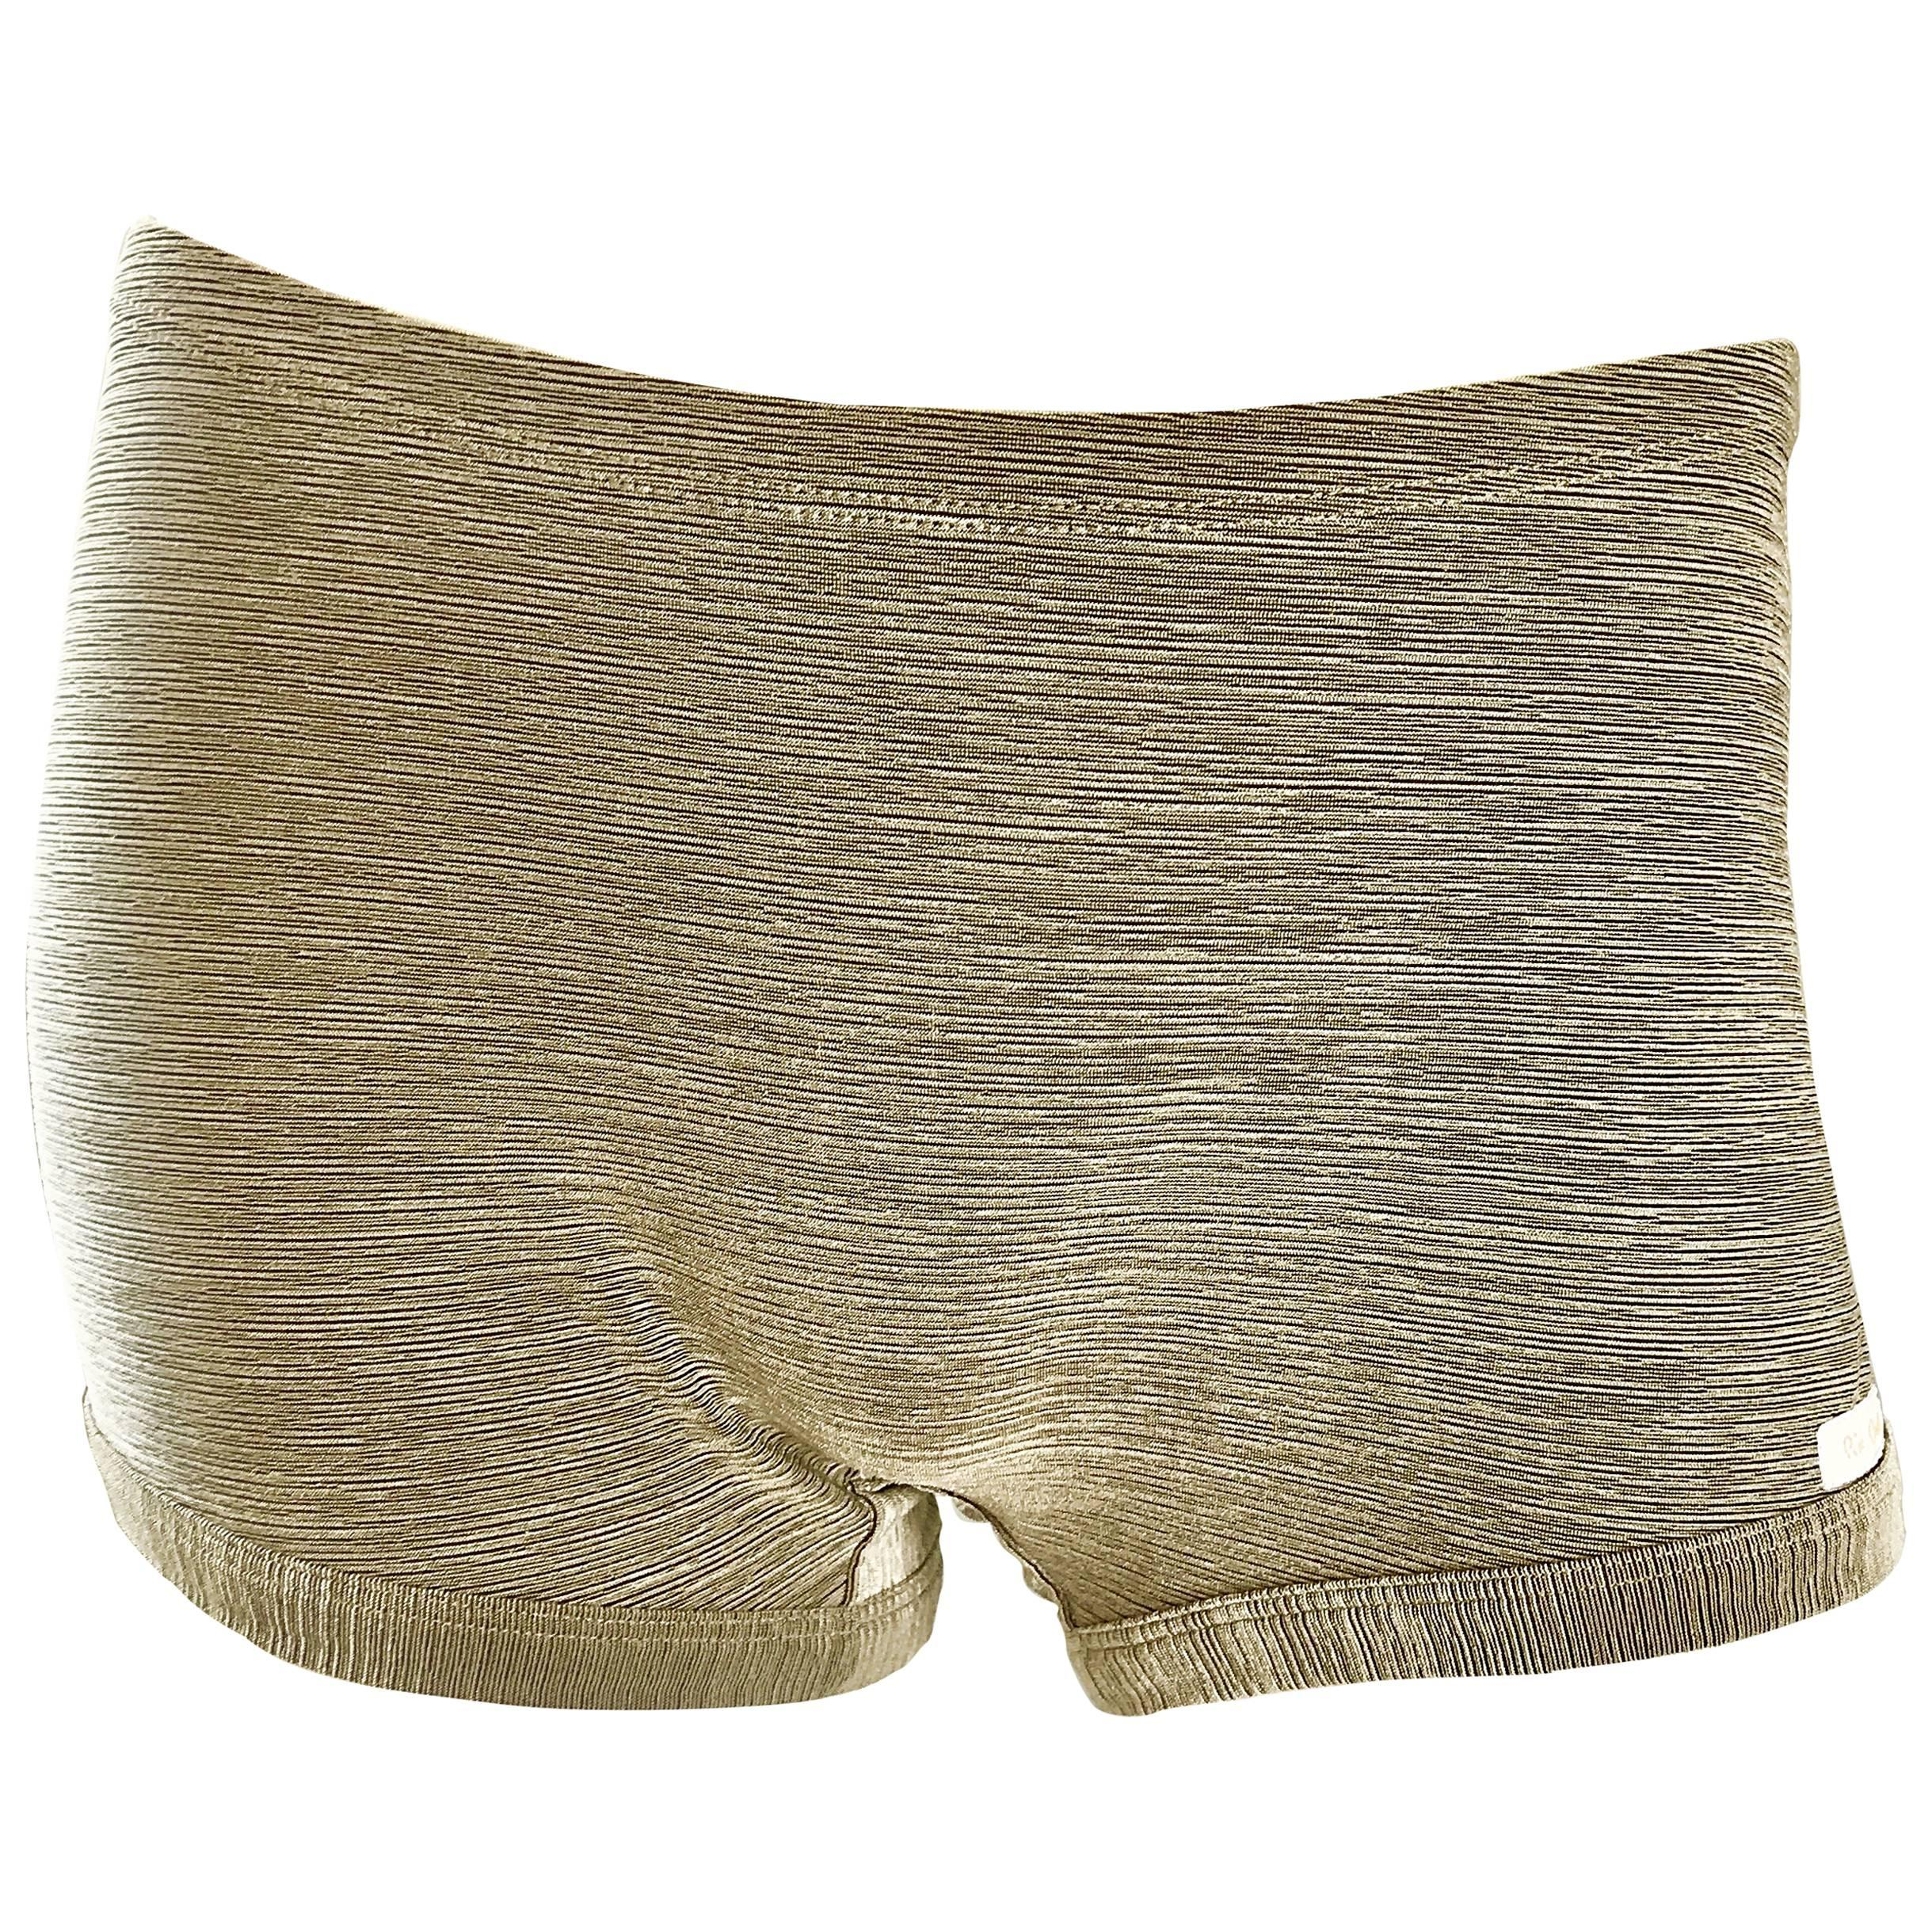 66b9c468d5 Vintage Pierre Cardin 1970s Gold Metallic Sexy 70s Disco Hot Pants / Shorts  For Sale at 1stdibs